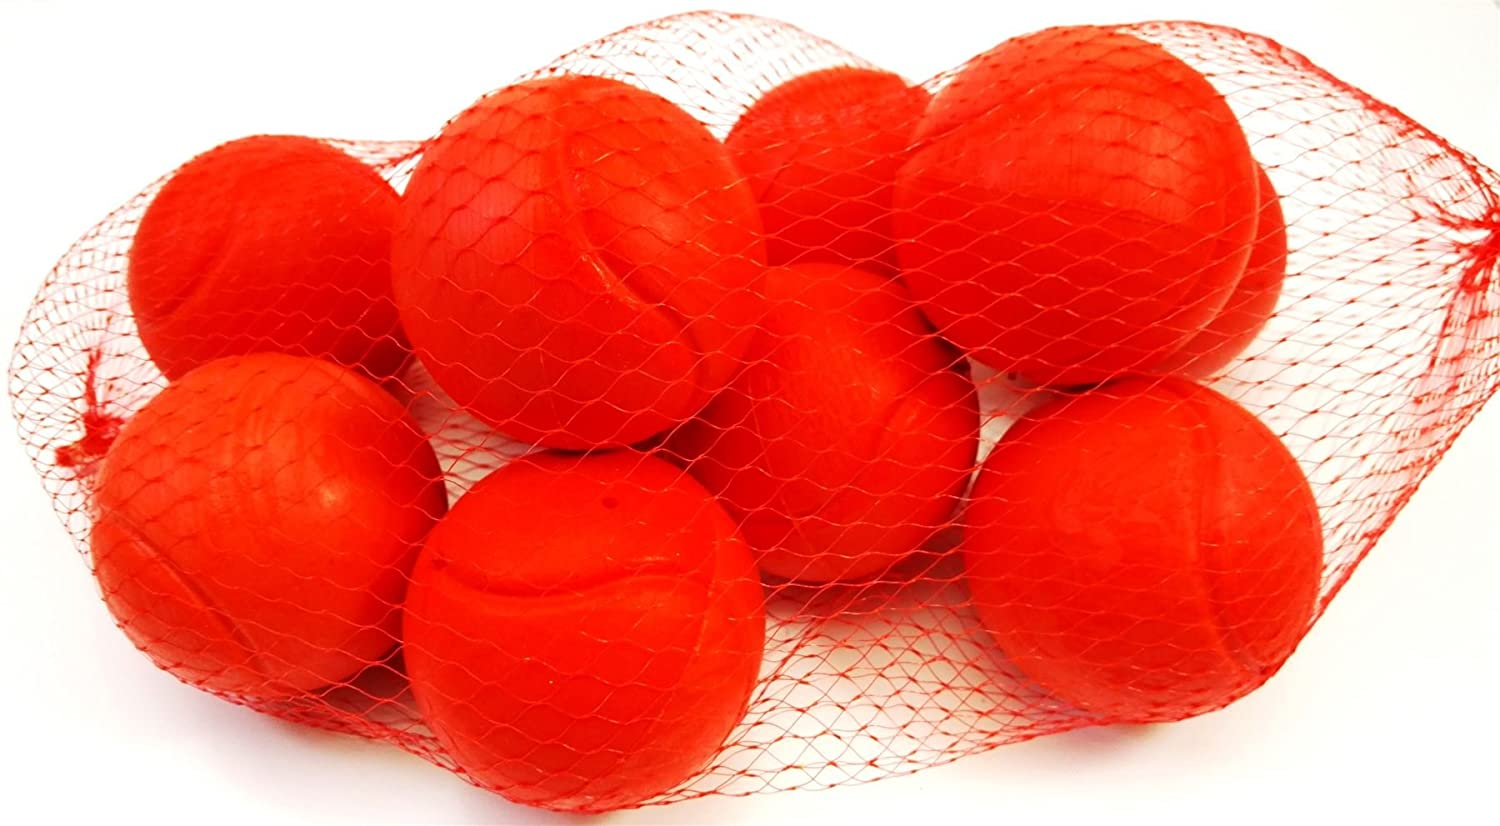 10 Foam Tennis Ball 70mm Red Indoor Outdoor Football Soccer Fun Sport Soft Toy Play for Kids Kick Catch Game Concept4u